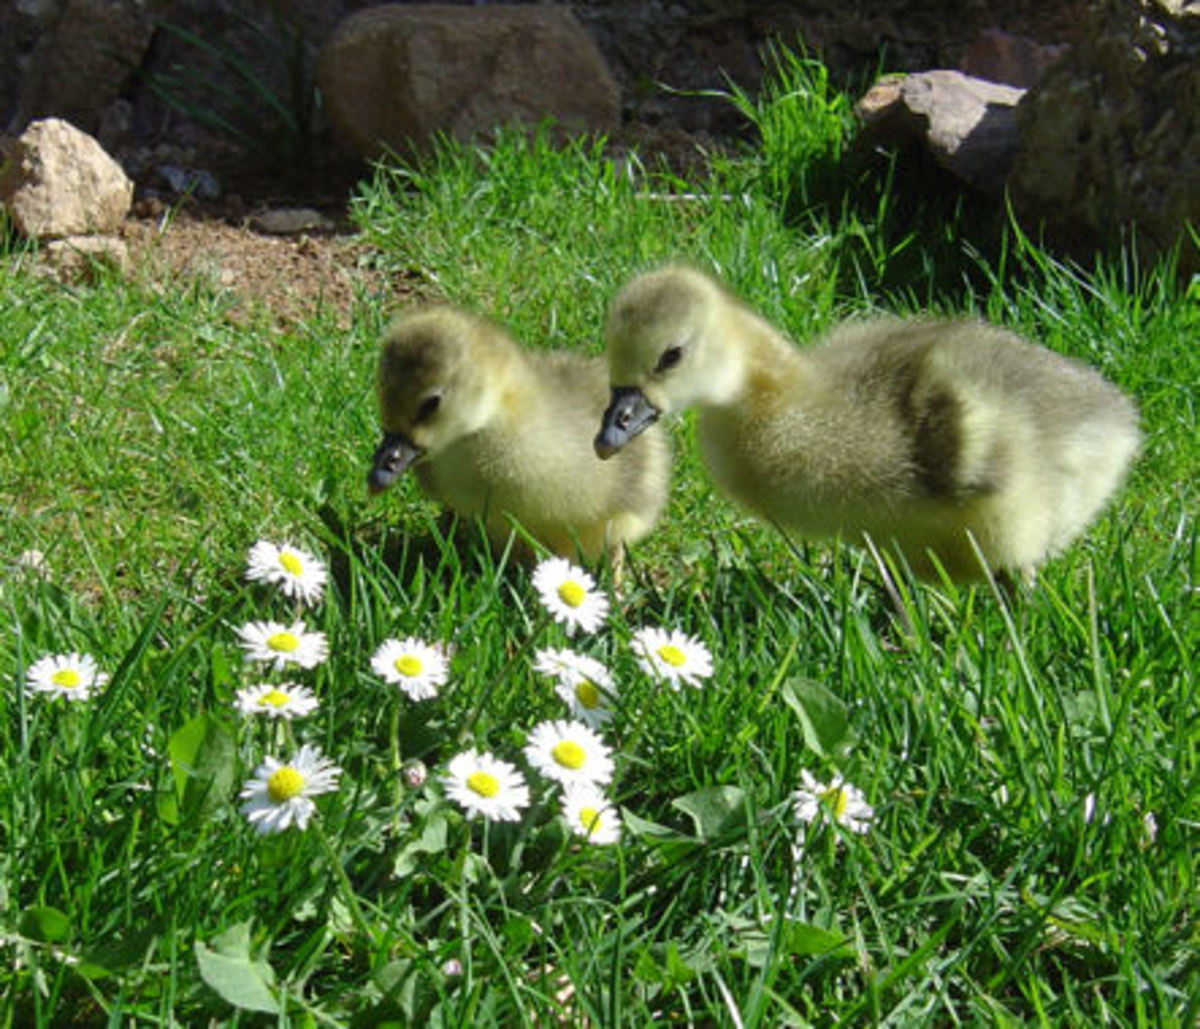 Only two weeks old and these goslings are already hard at work managing grass.